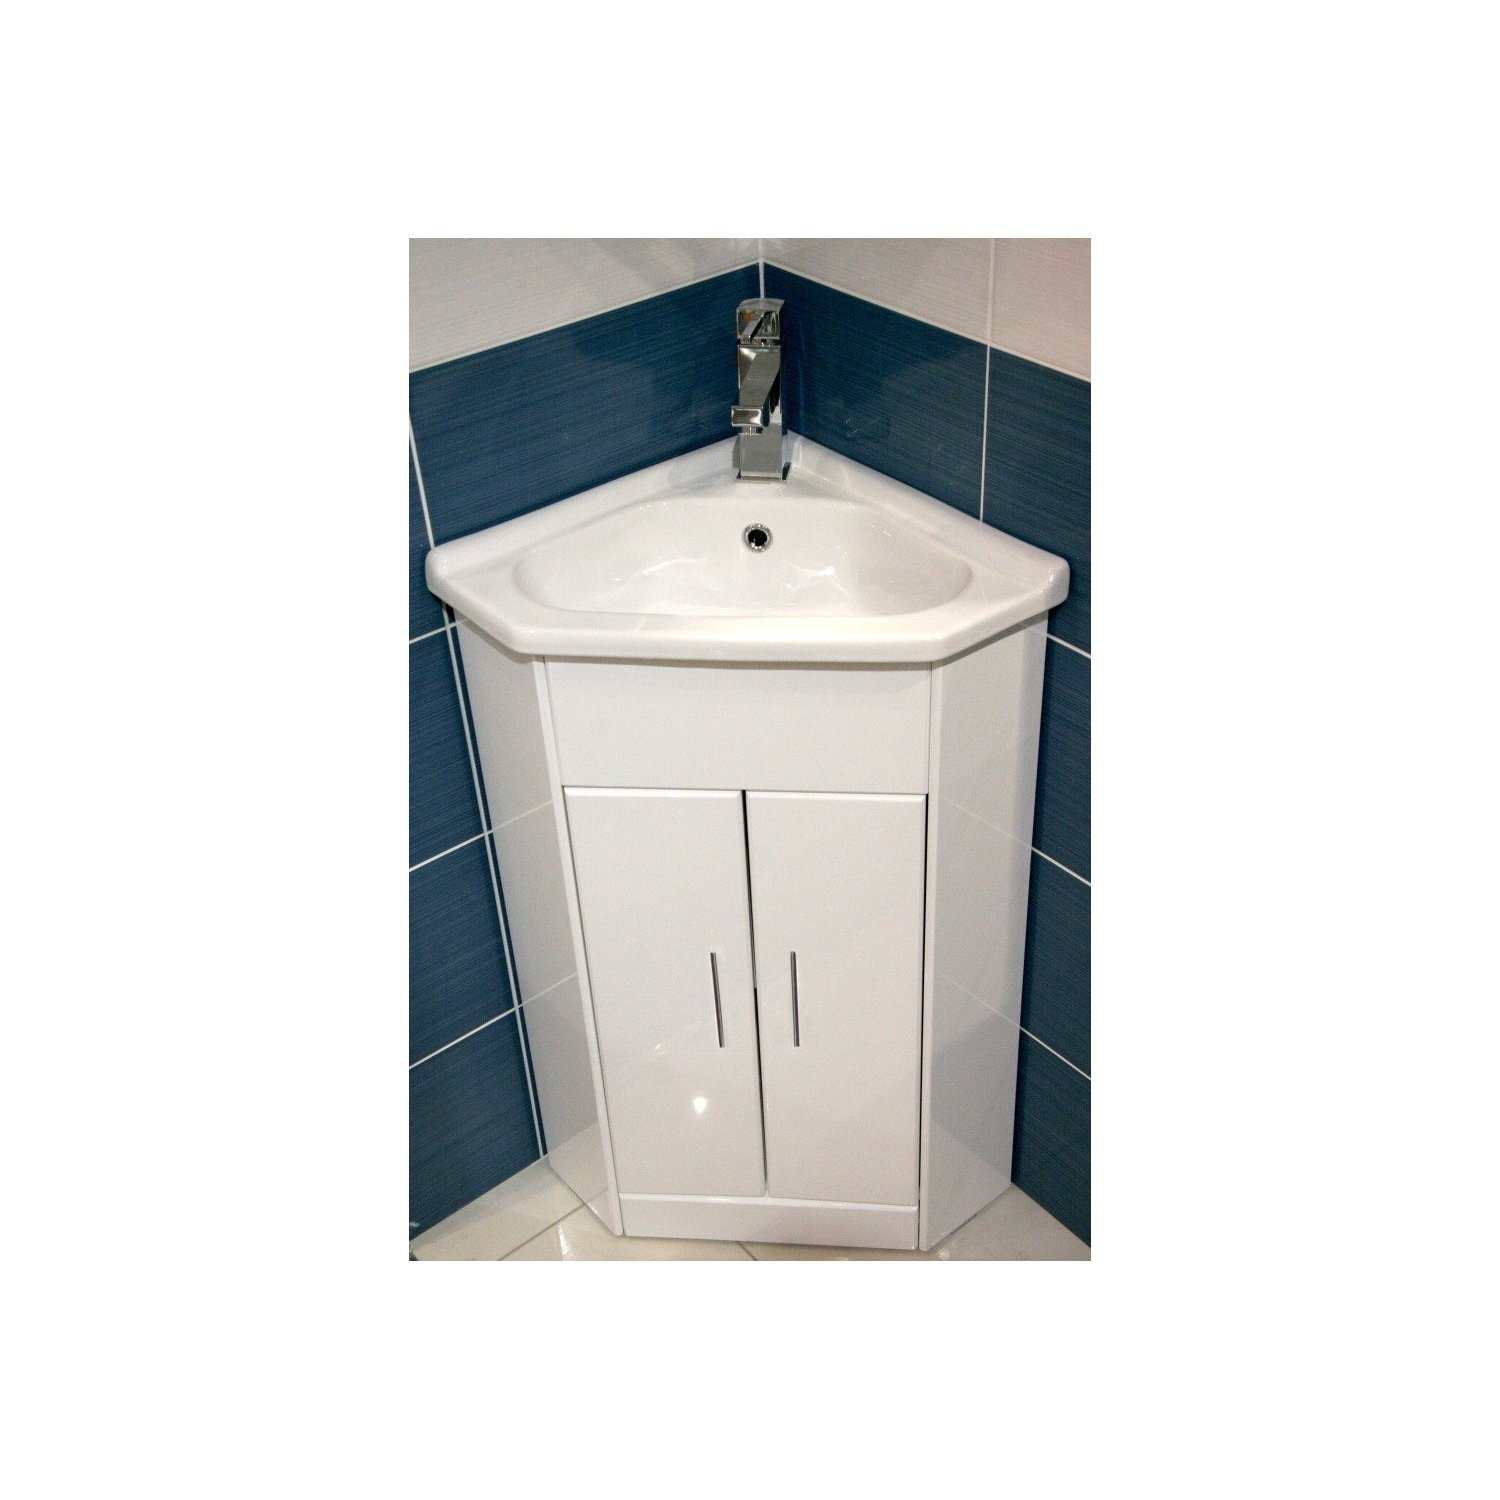 White Compact Corner Vanity Unit Bathroom Furniture Sink Cabinet Ceramic  570 X 400 + Tap: Amazon.co.uk: Kitchen U0026 Home